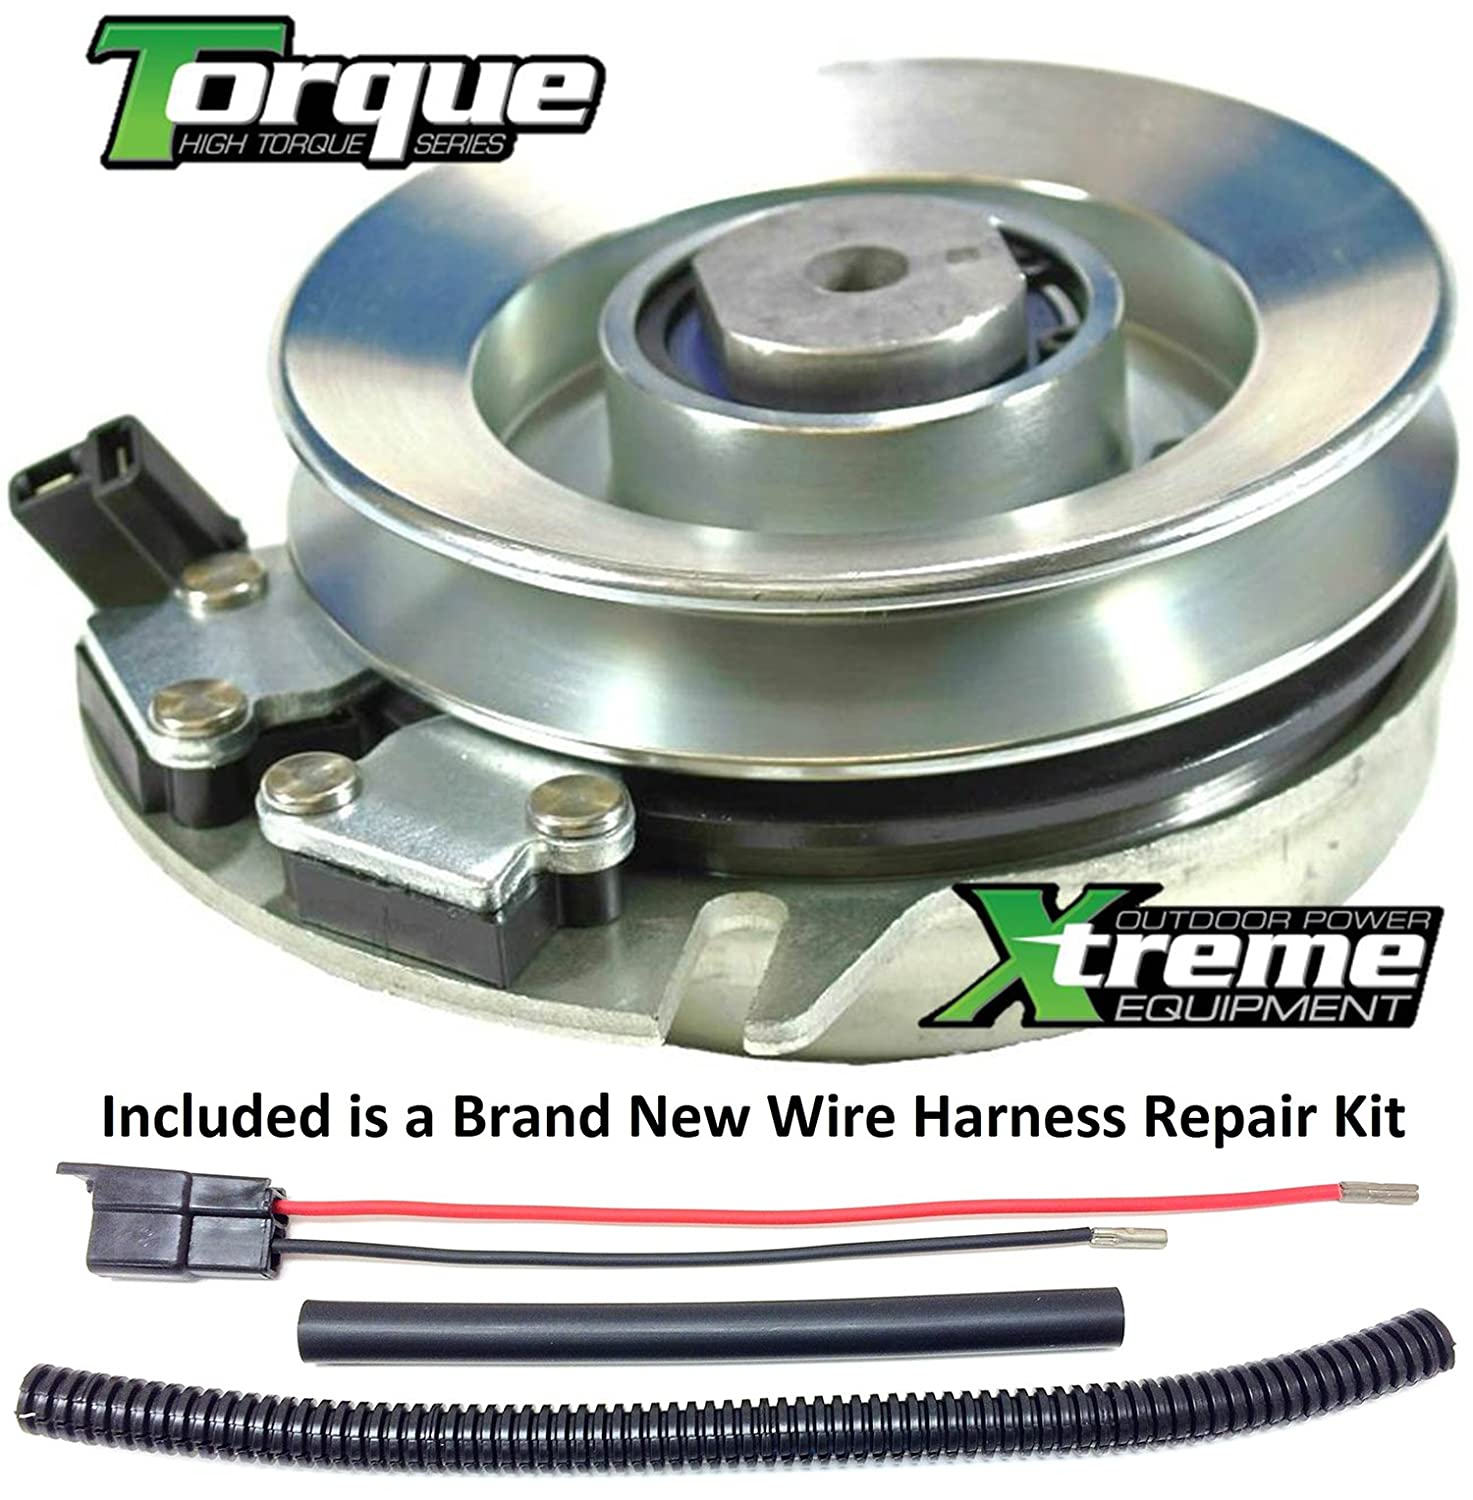 Amazon.com : Bundle - 2 items: PTO Electric Blade Clutch, Wire Harness  Repair Kit. Replaces Gravely Clutch EZR 1340 1440 1540 1640 1648 -w/ Wire  Harness ...